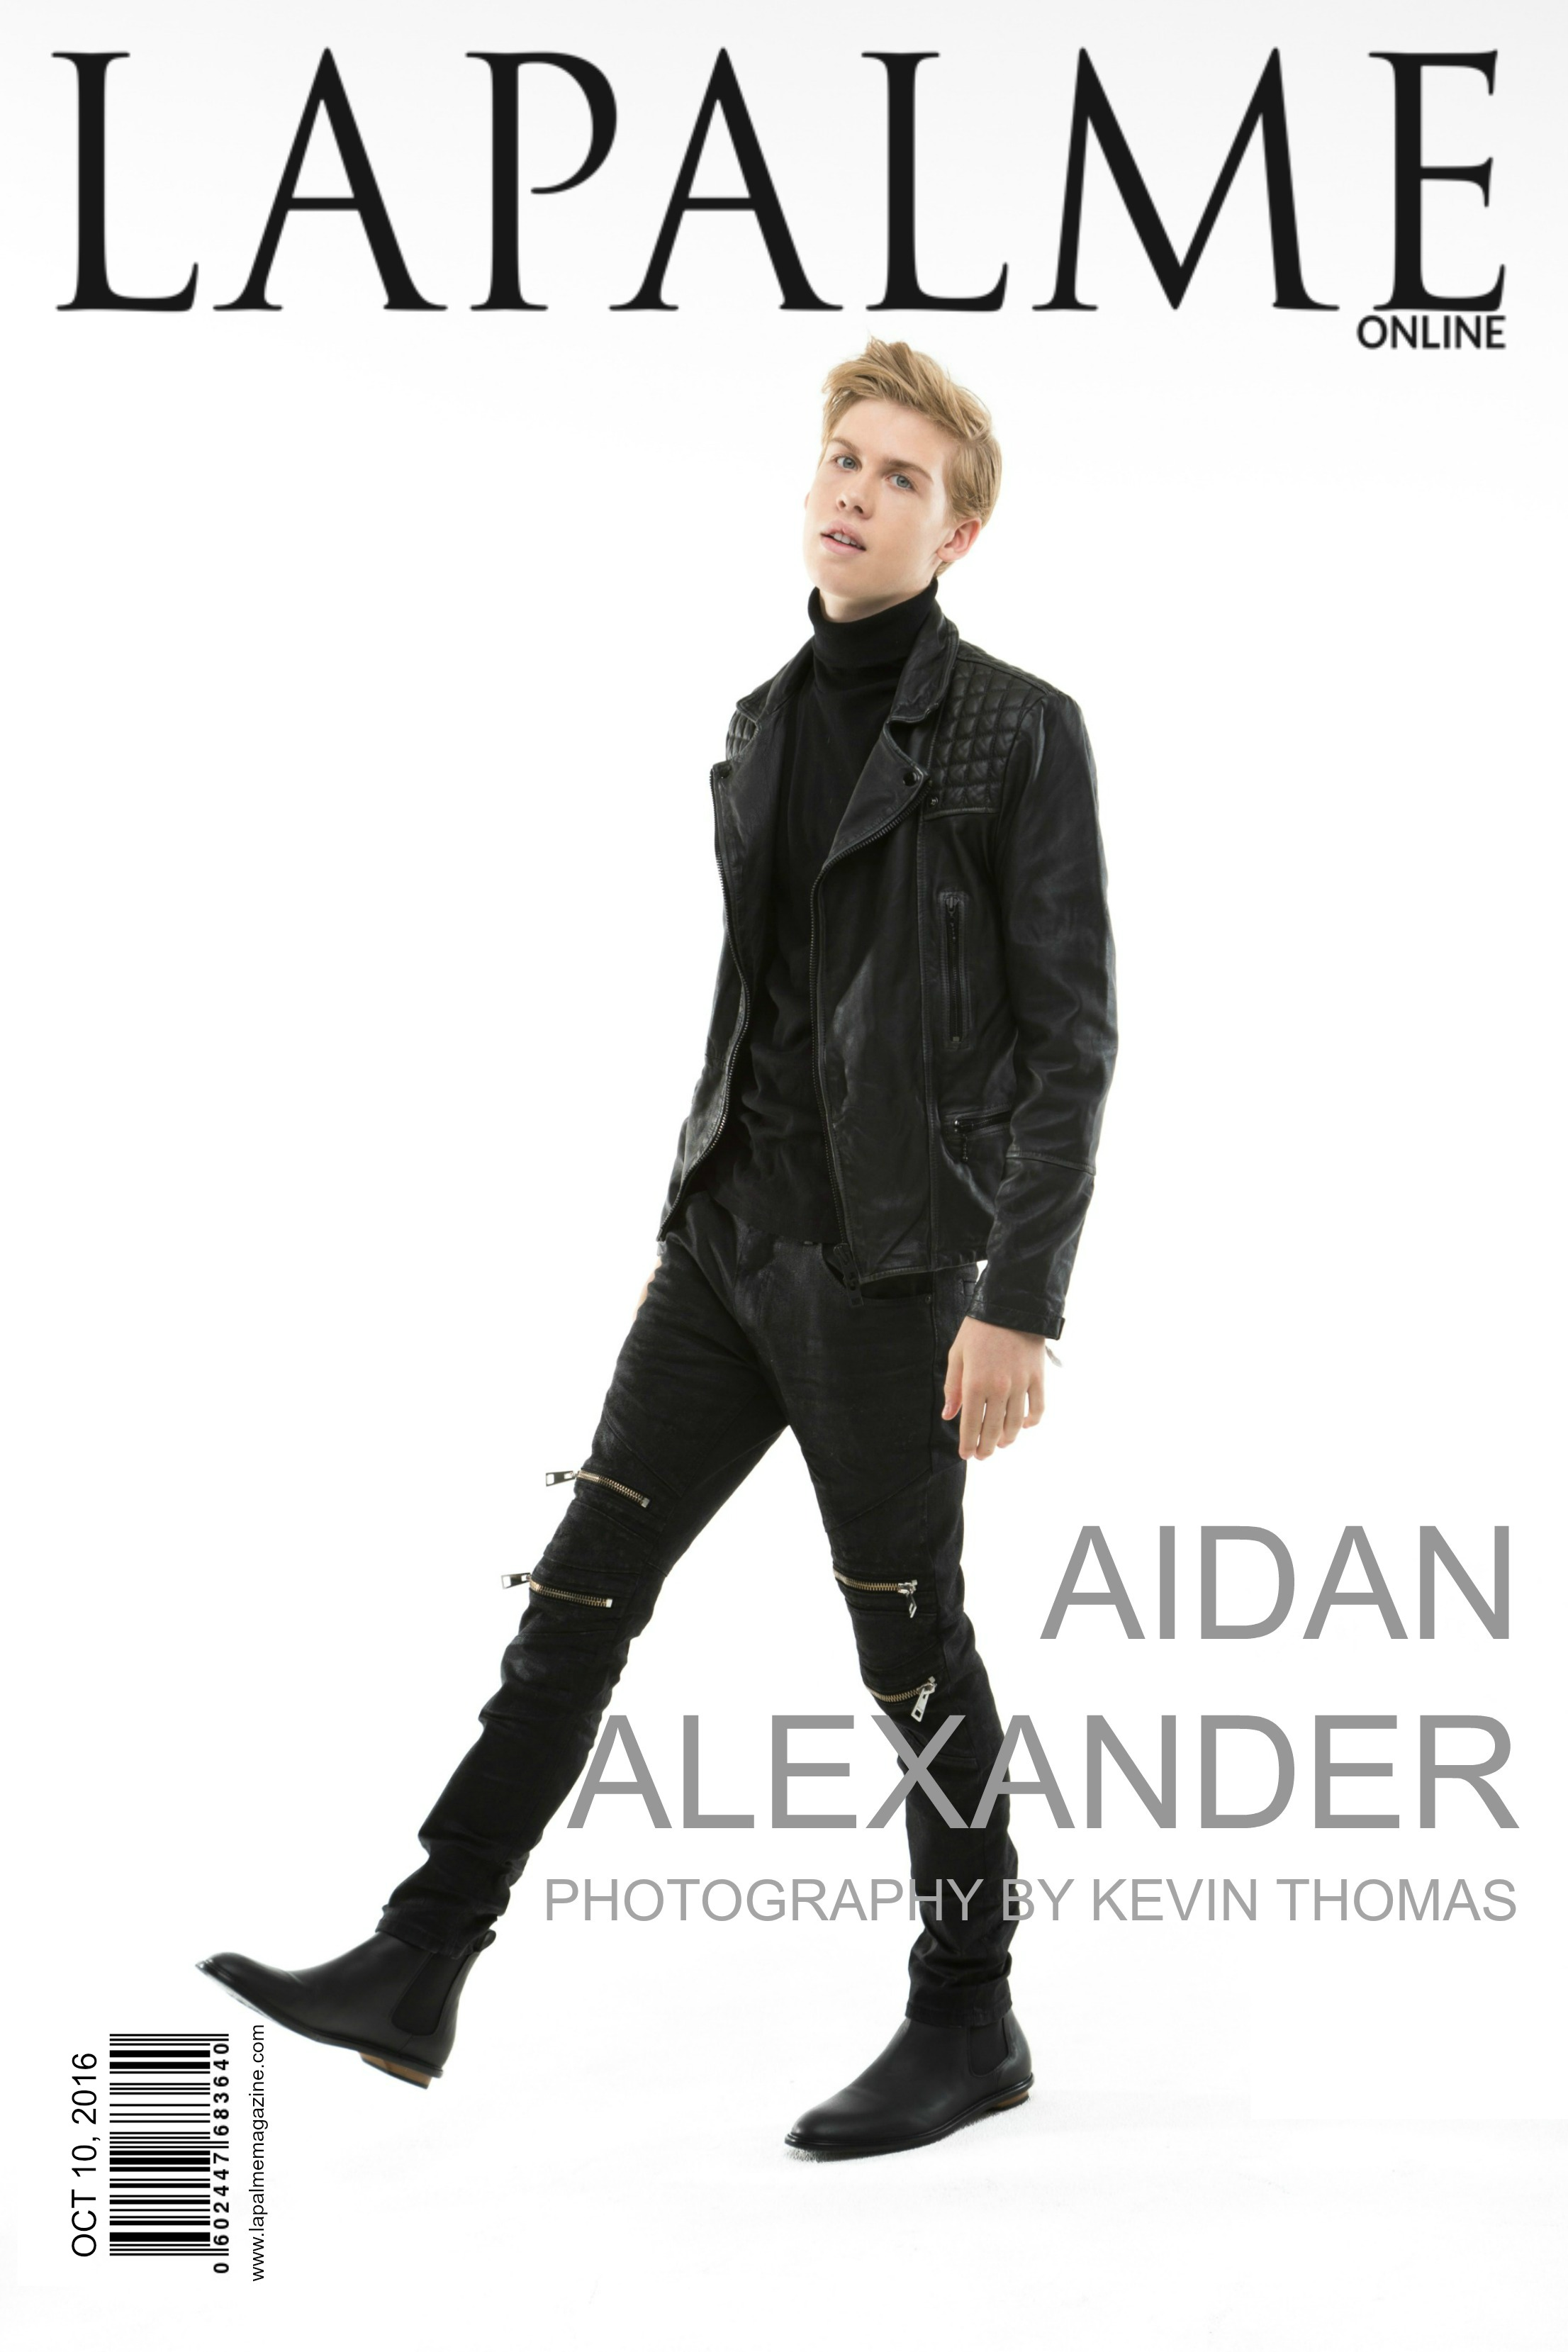 10 Things You Need to Know About Aidan Alexander